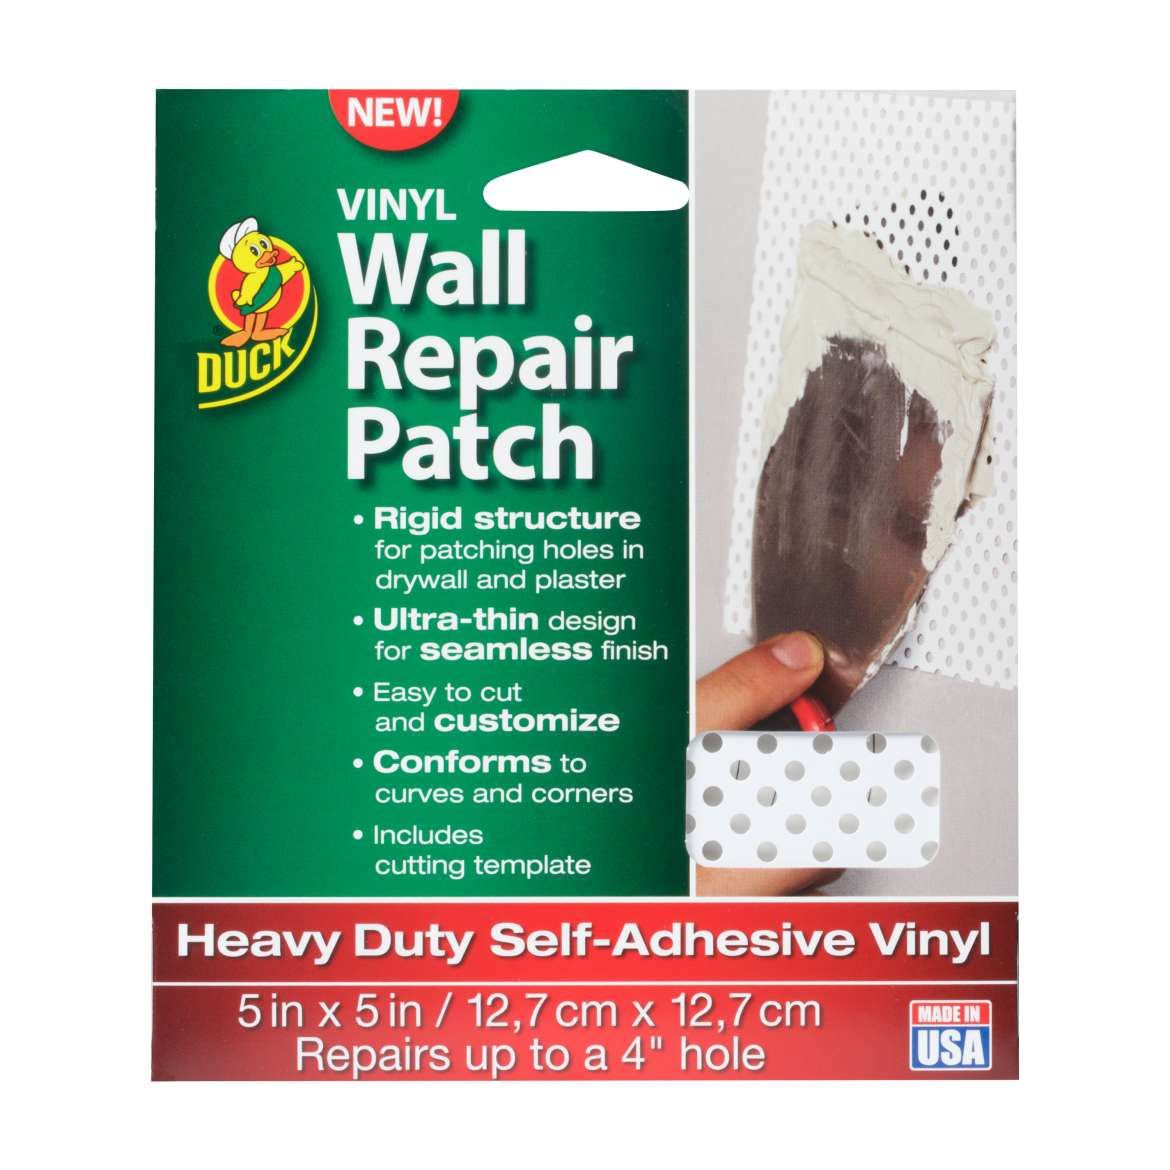 Vinyl Wall Repair Patch Image